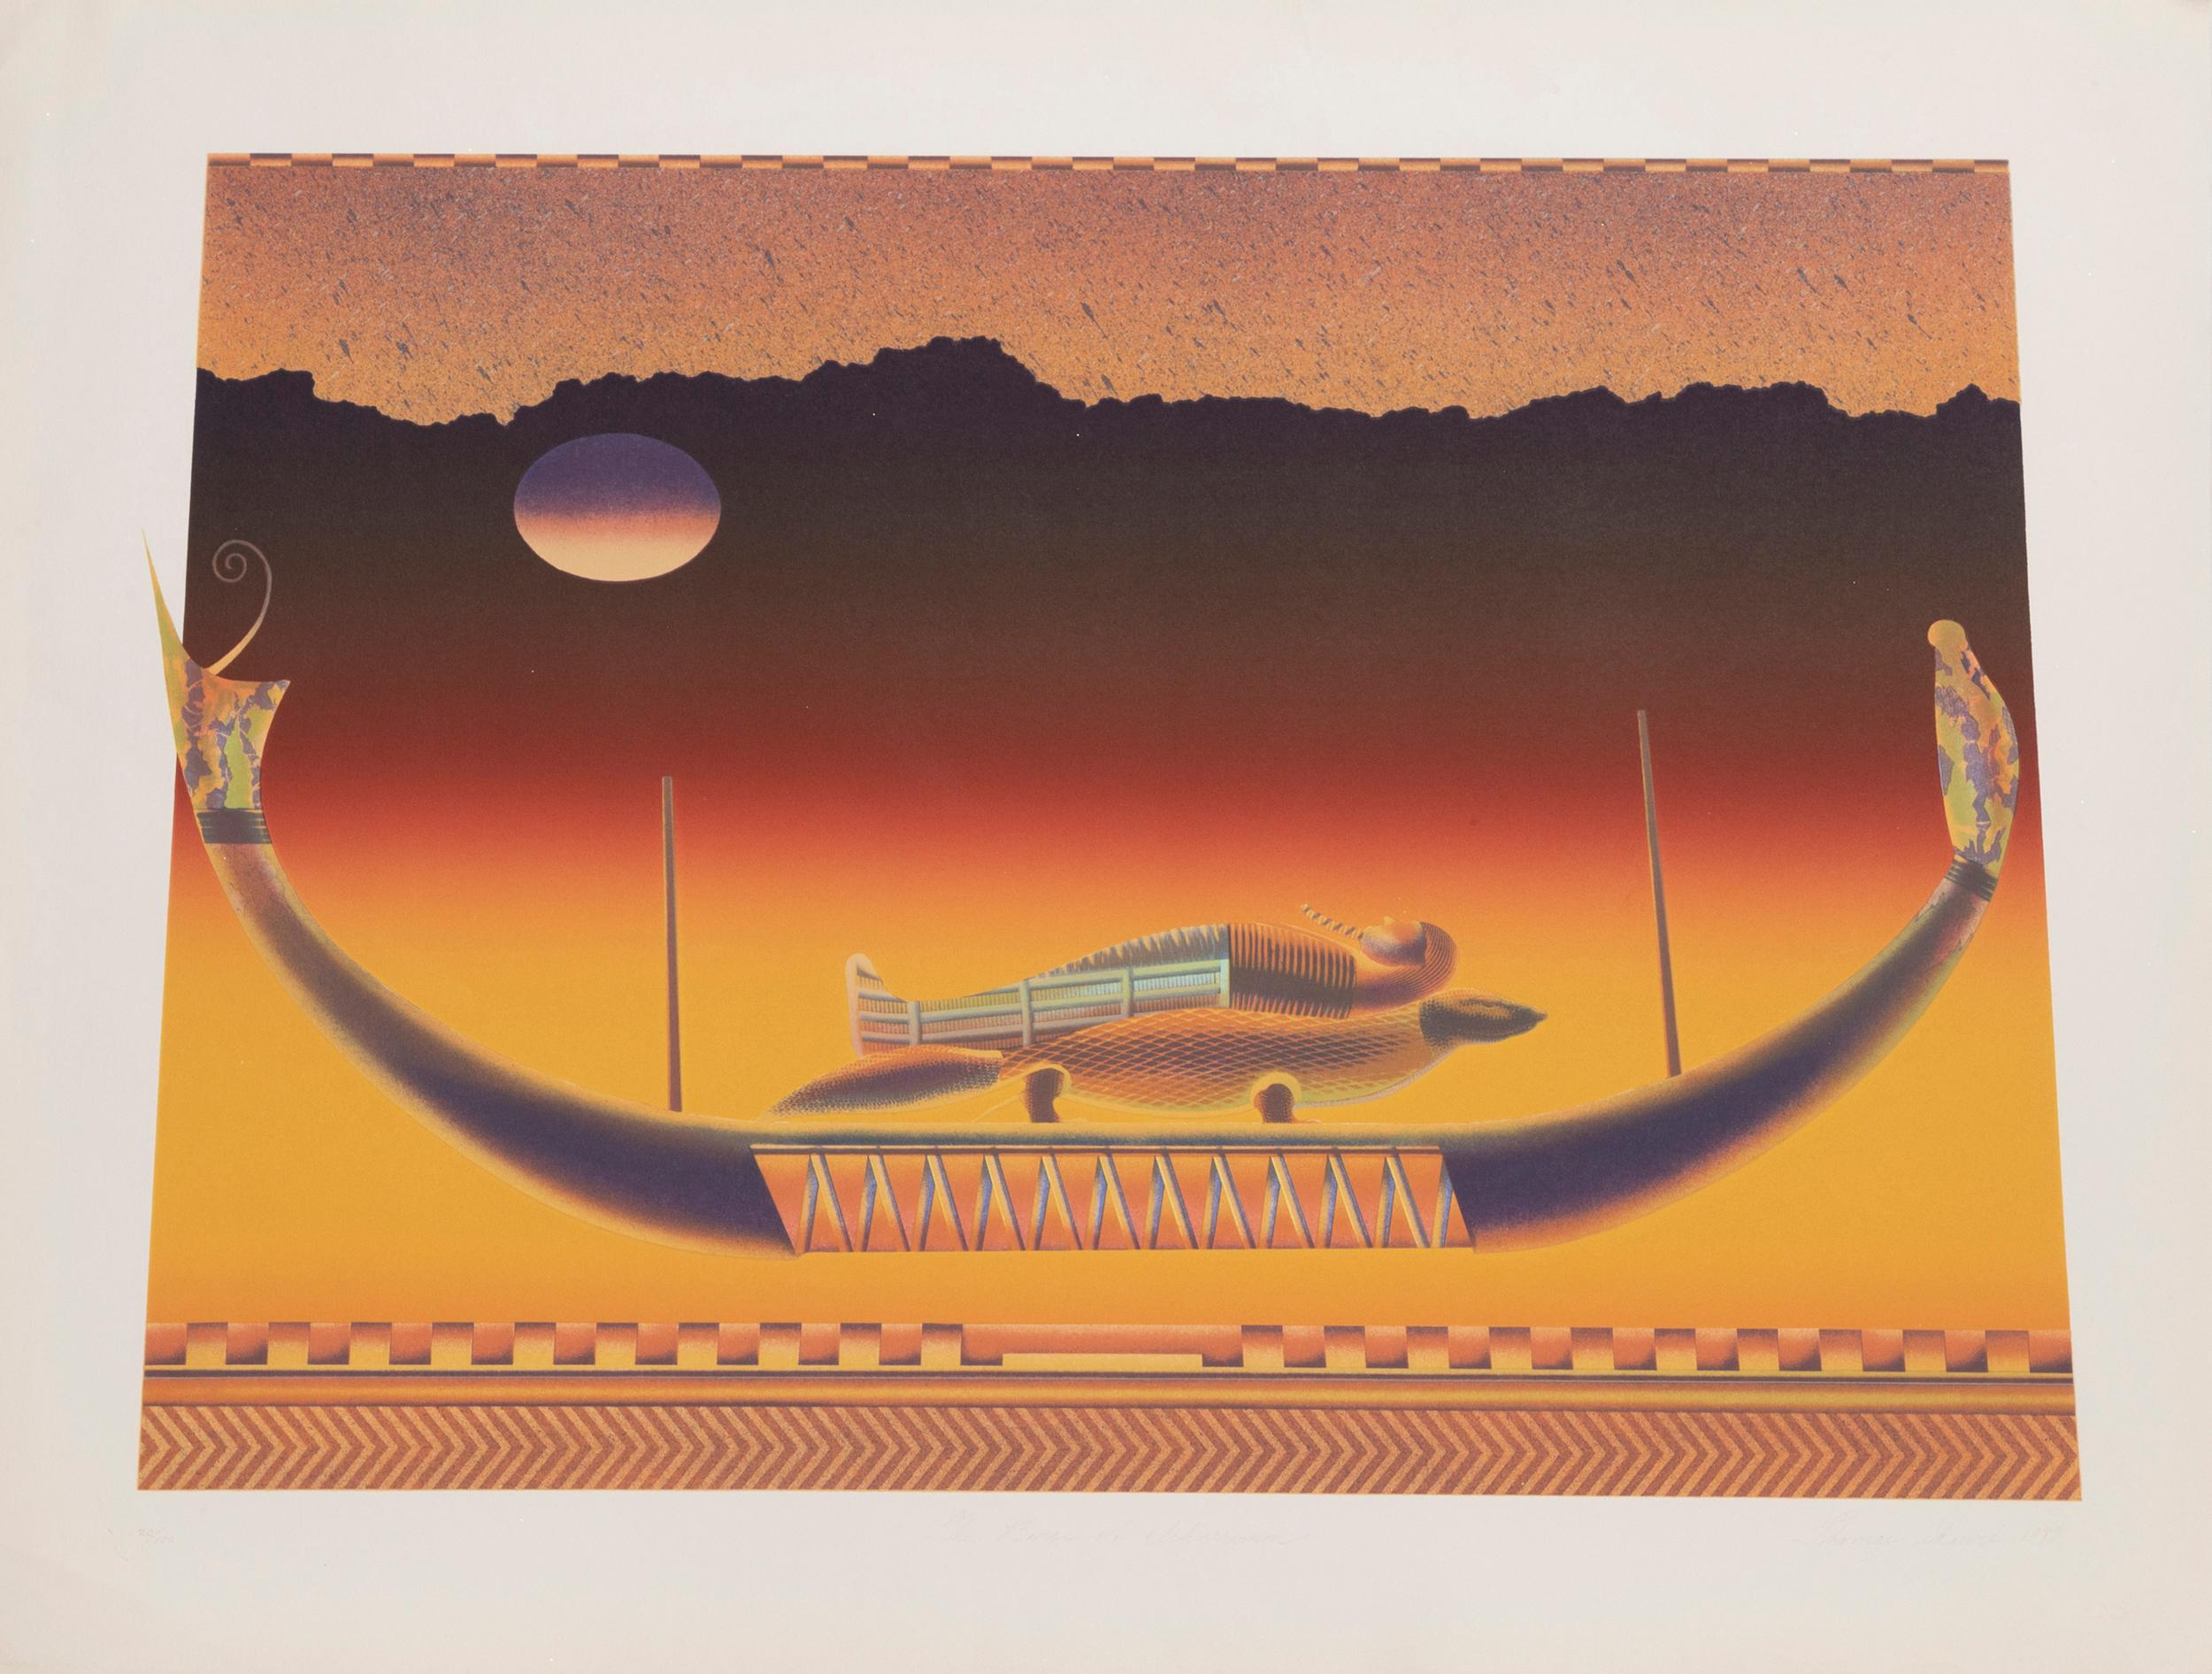 Thomas Akawie, Barge of Ichneumon, Screenprint